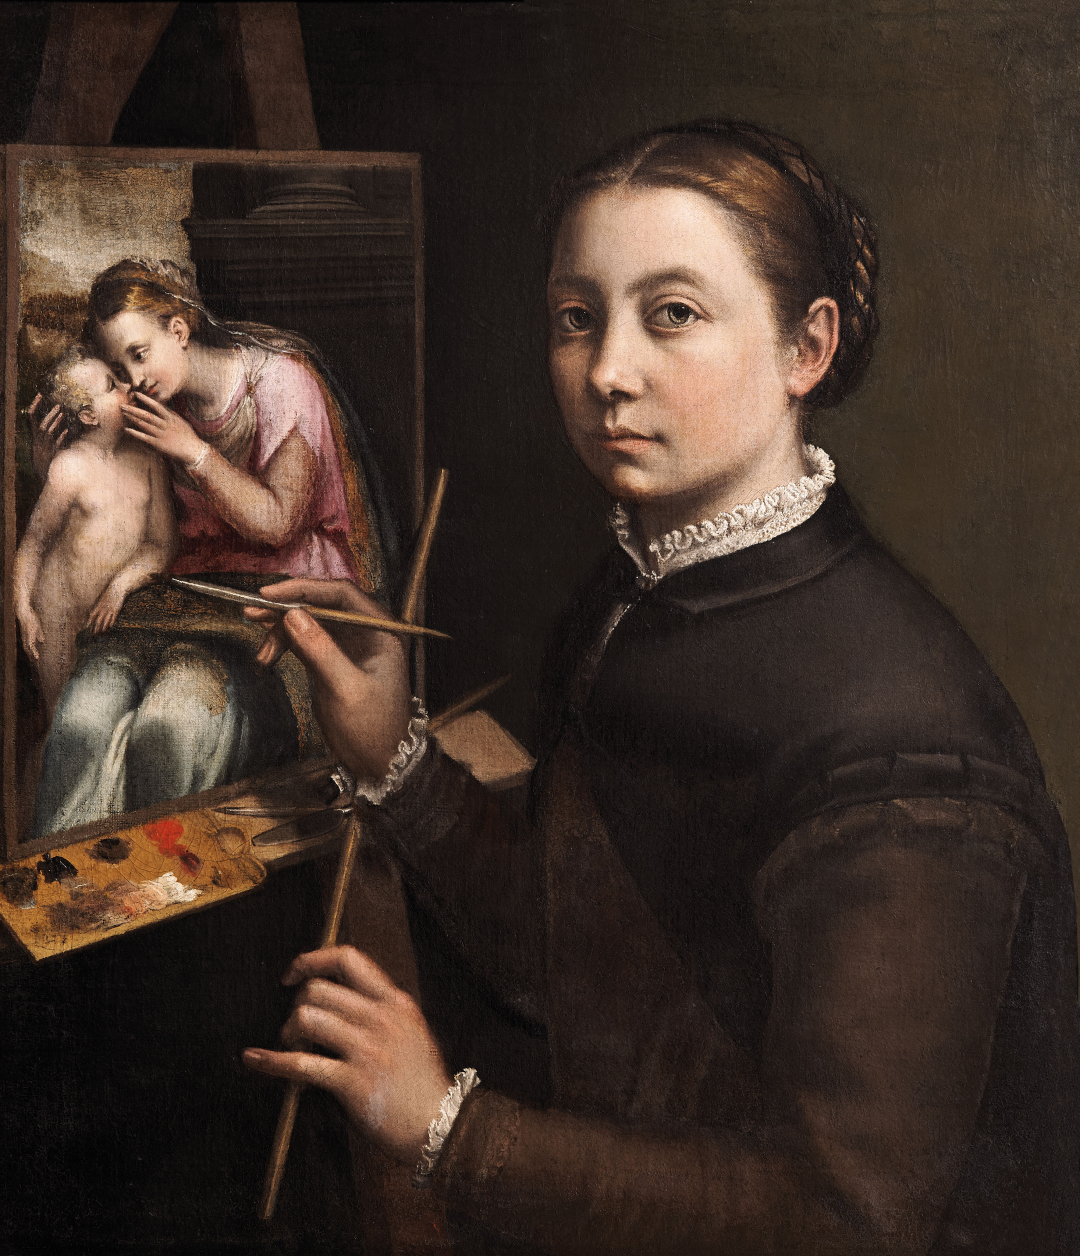 Sofonisba-Anguissola-Self-Portrait-at-the-Easel-Sofonisba-Anguissola-Oil-on-canvas-c.-1556−57-Poland-The-Castle-Museum-in-Łańcut-1080x1256.jpg